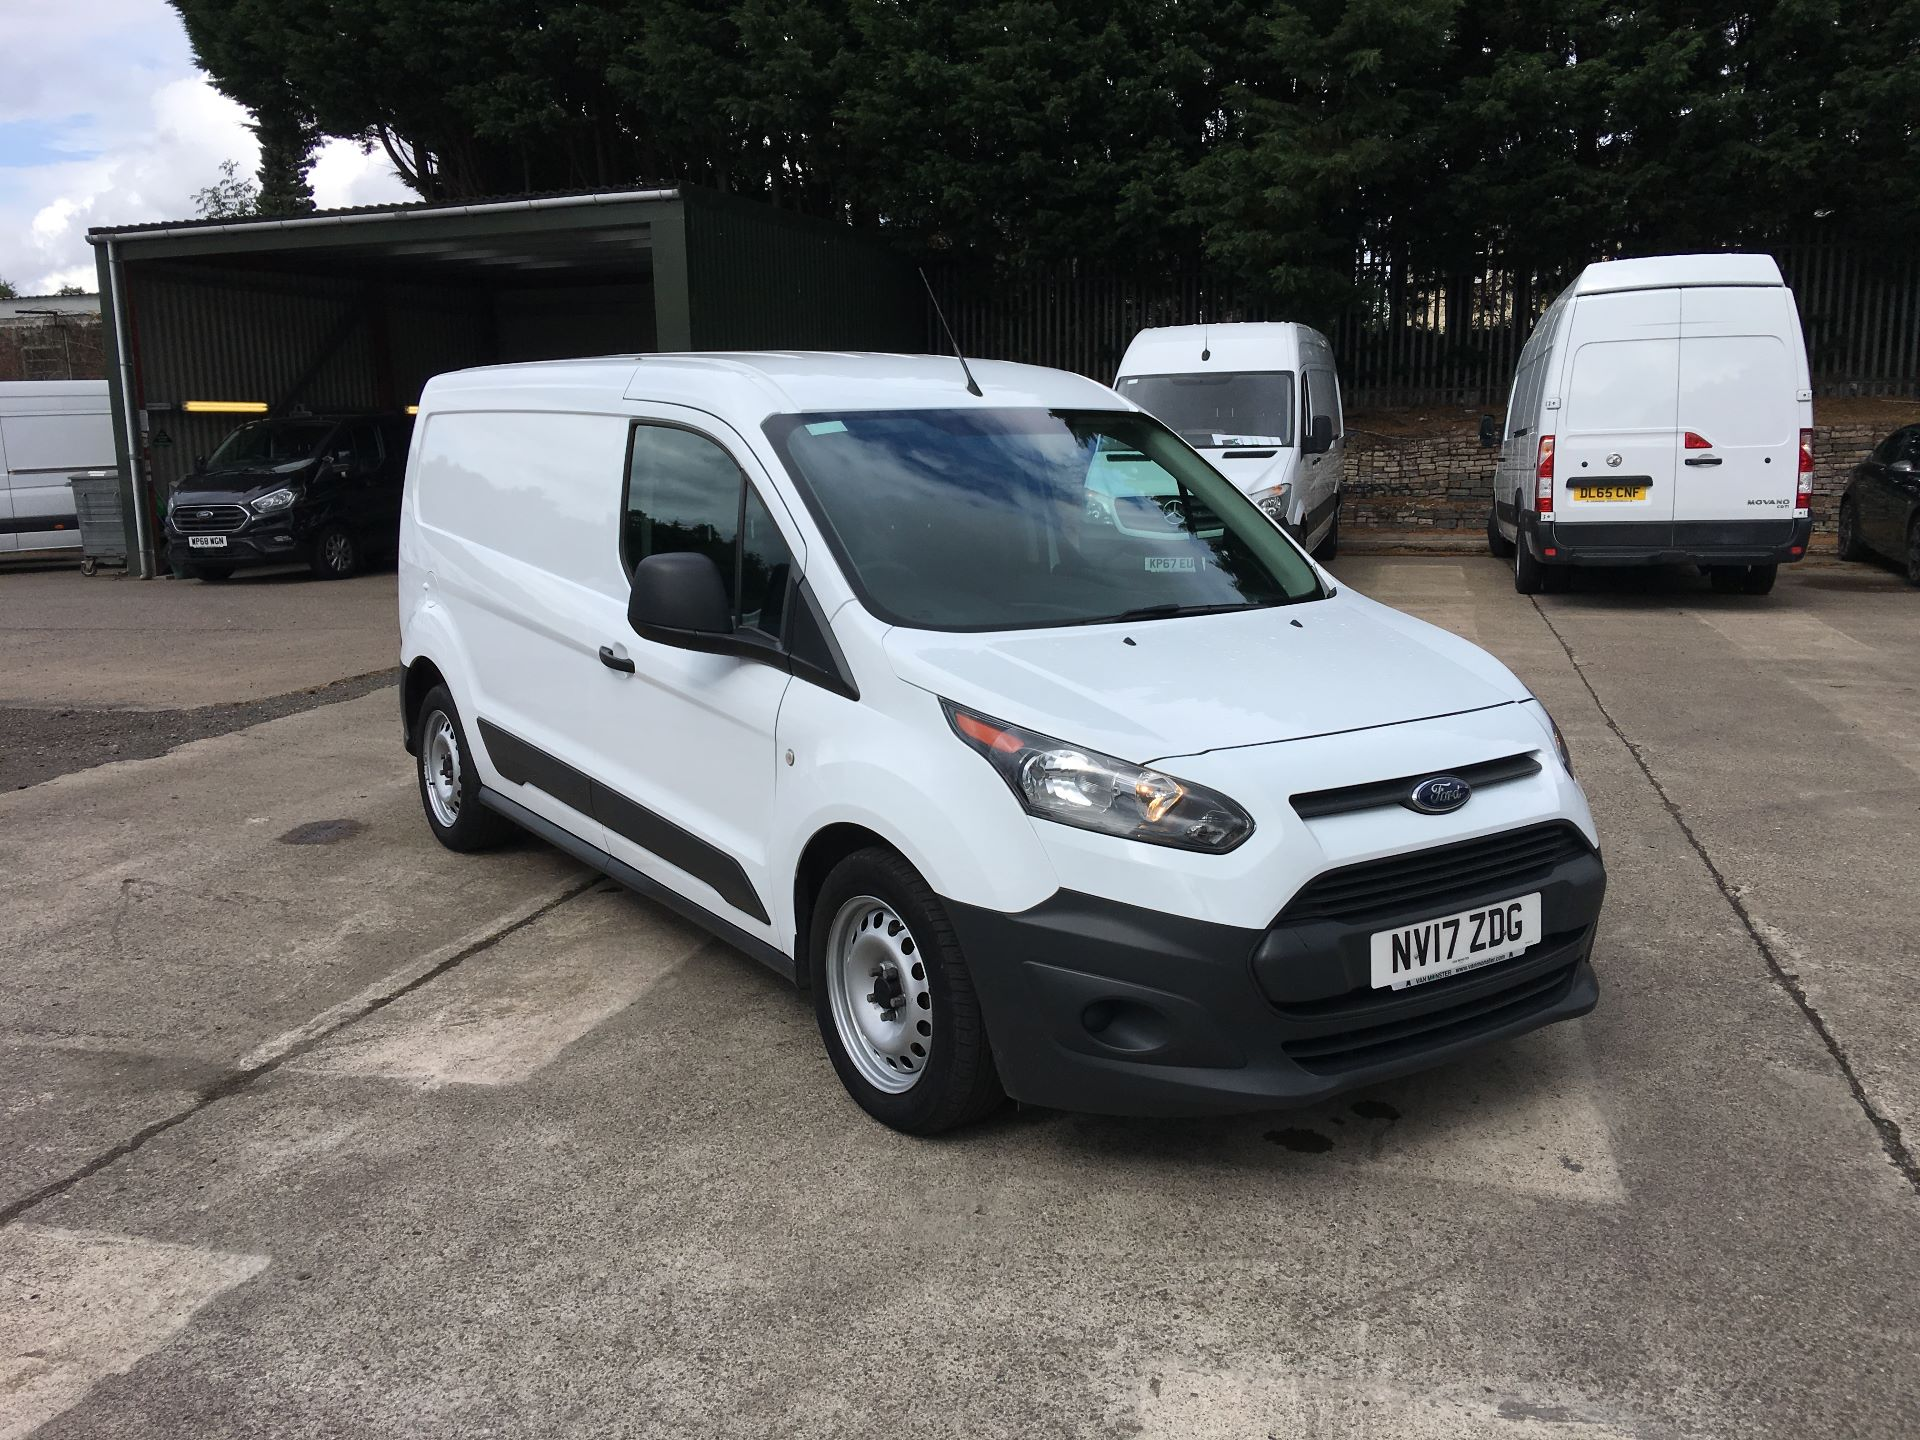 2017 Ford Transit Connect 210 L2 1.5 TDCI 75PS VAN EURO 6 (NV17ZDG)